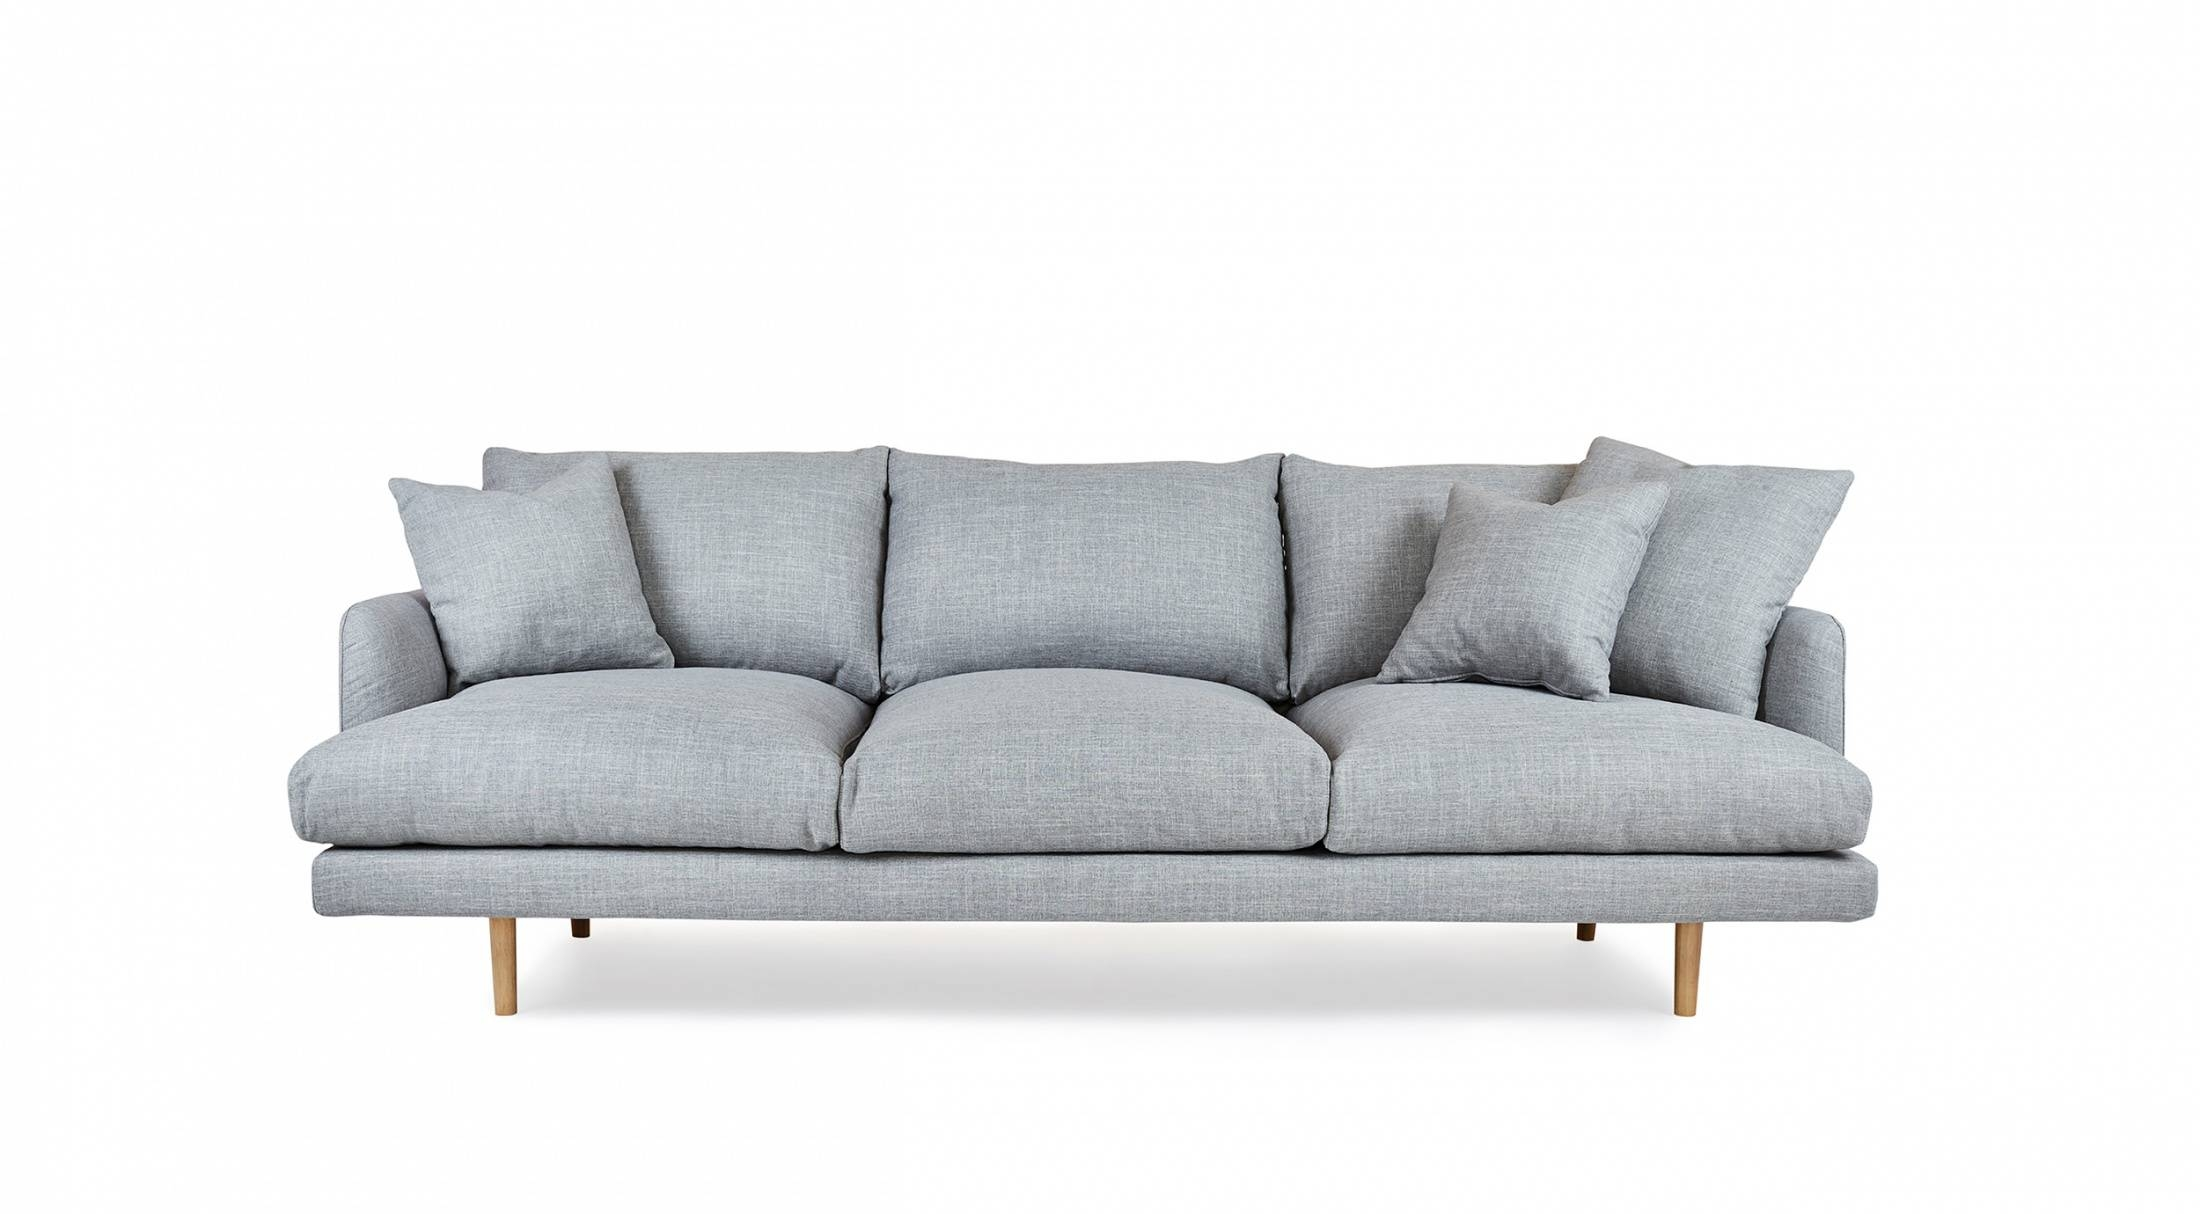 Hampton - 4 Seat Sofa | Loungelovers throughout 4 Seat Couch (Image 16 of 30)